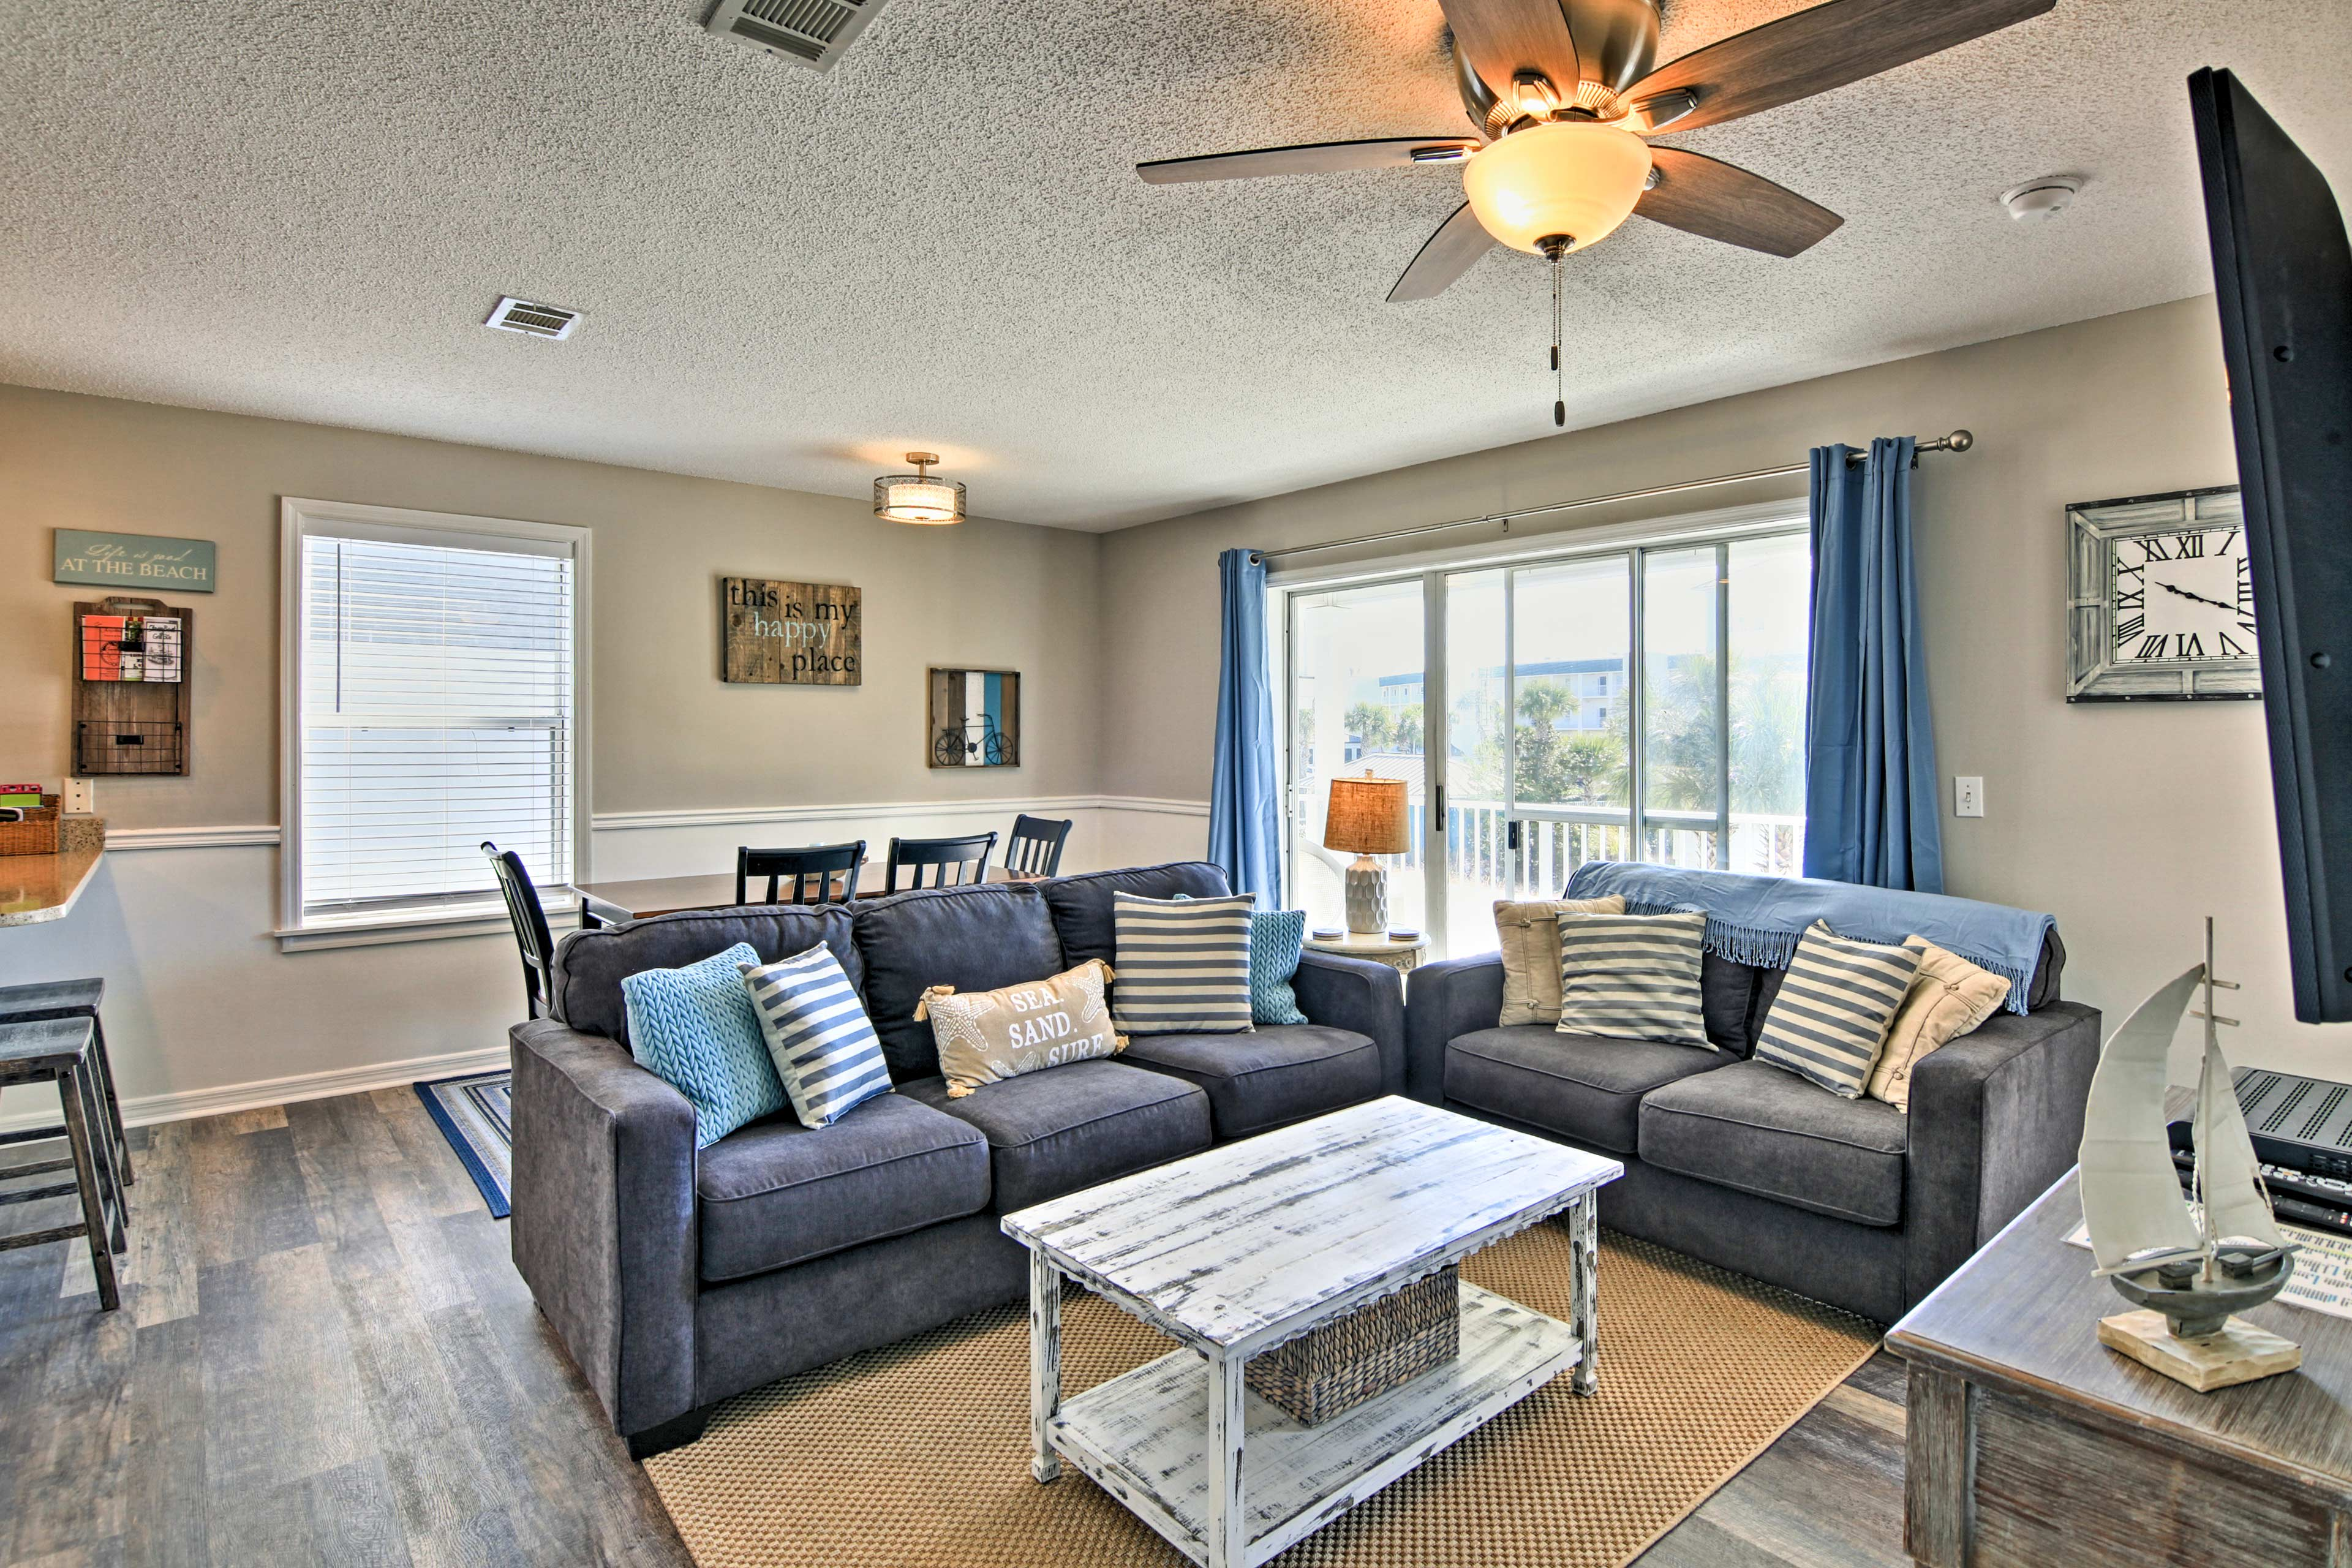 Make yourself at home in the 1,028 square feet of living space.